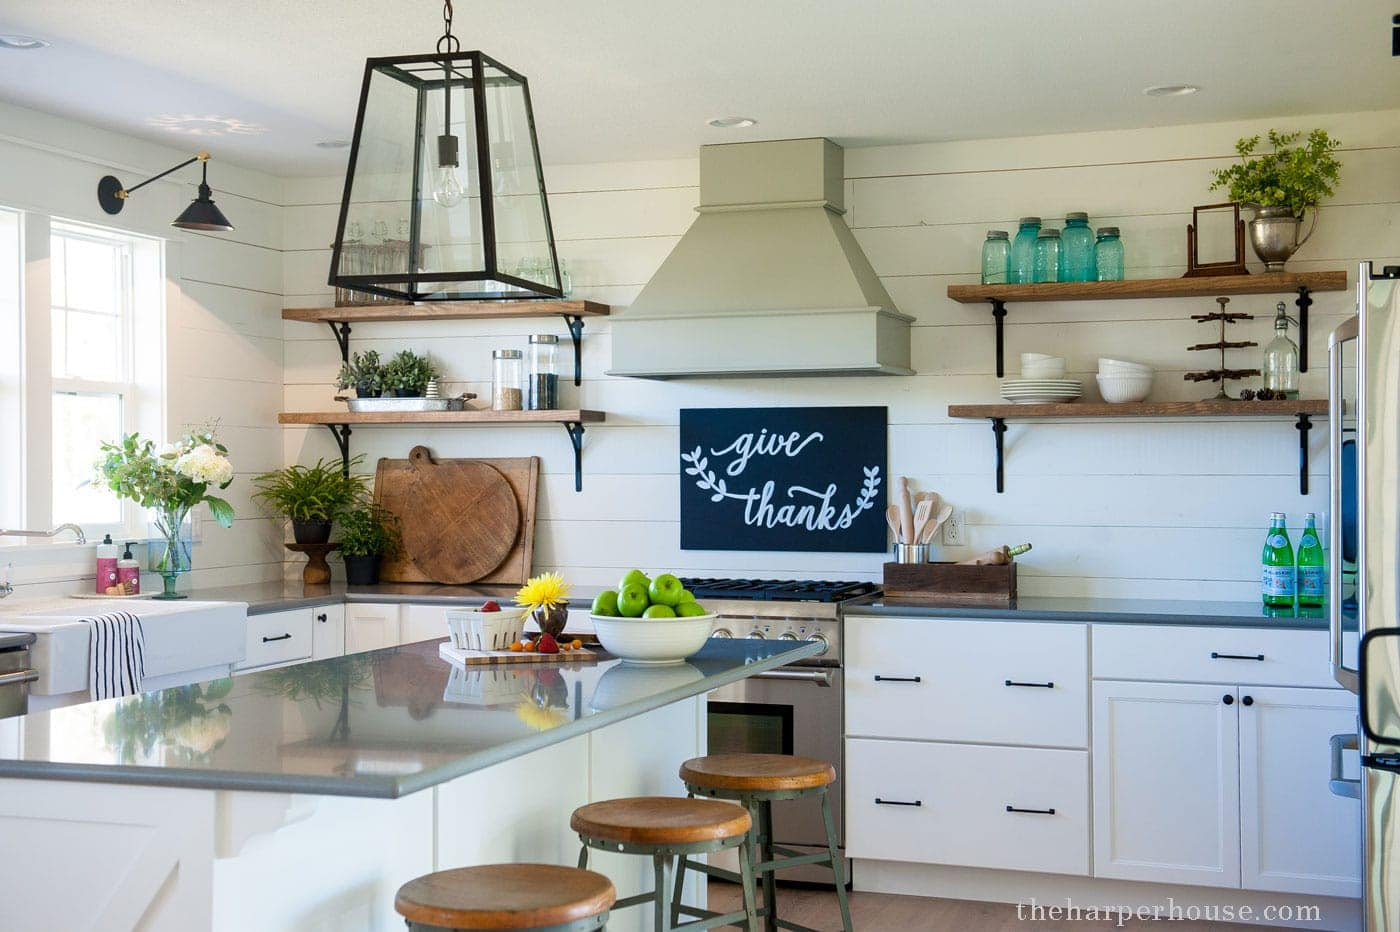 Farmhouse Kitchen our farmhouse kitchen reveal | the harper house